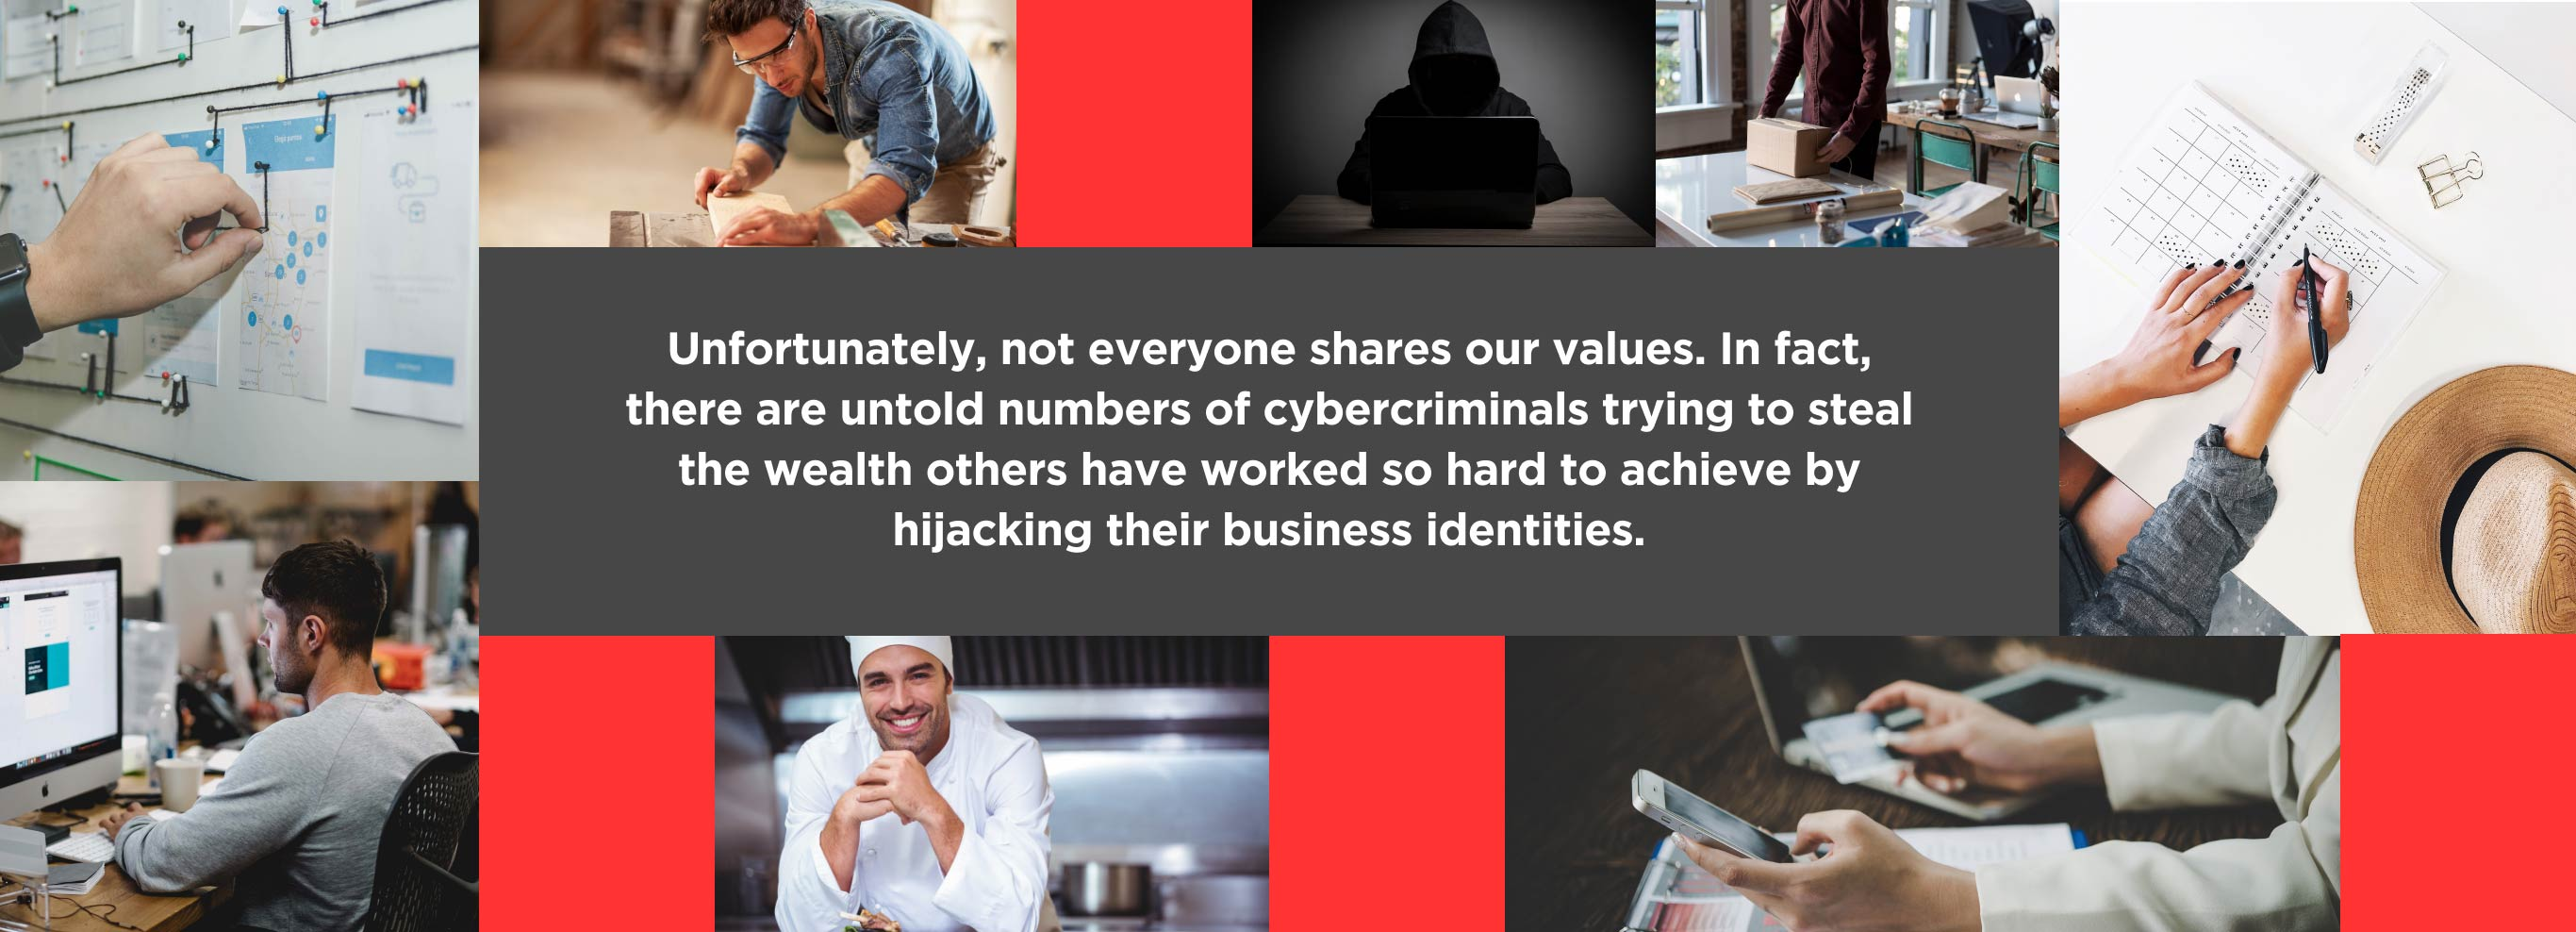 Unfortunately, not everyone shares our values. In fact, there are untold numbers of cybercriminals trying to steal the wealth others have worked so hard to achieve by hijacking their business identities.